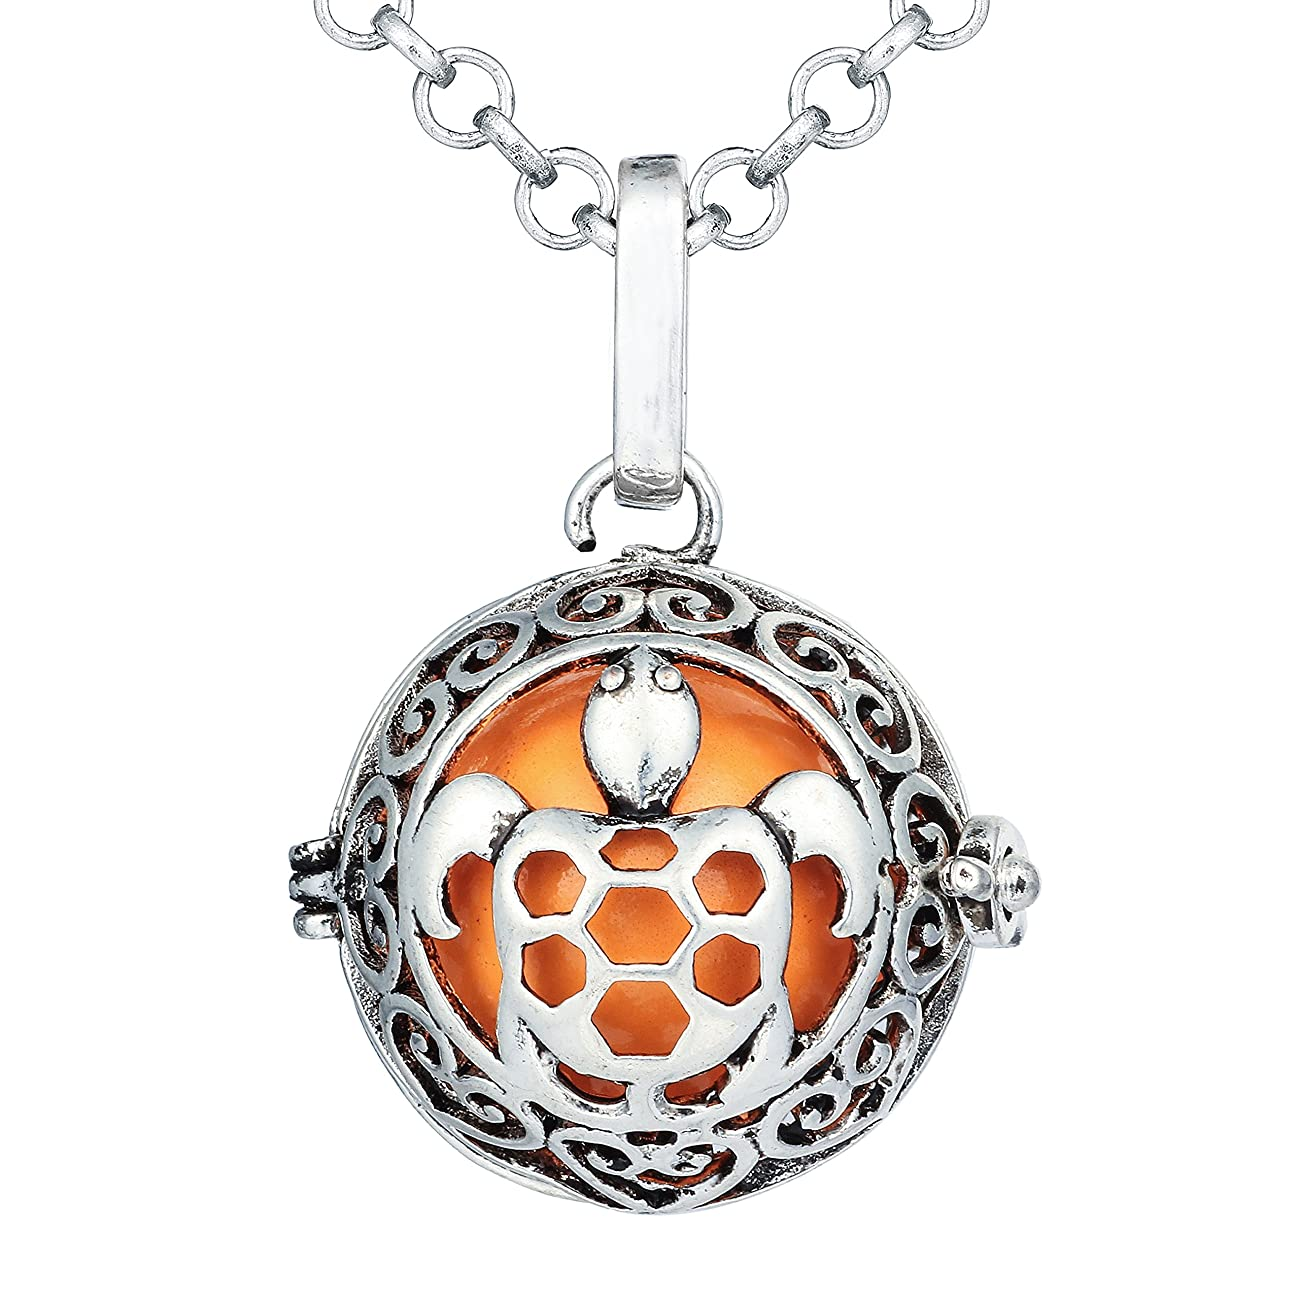 Bonnie Sea Turtle Music Chime Pregnancy Tortoise Locket Angel Caller Ball Pendant Necklace